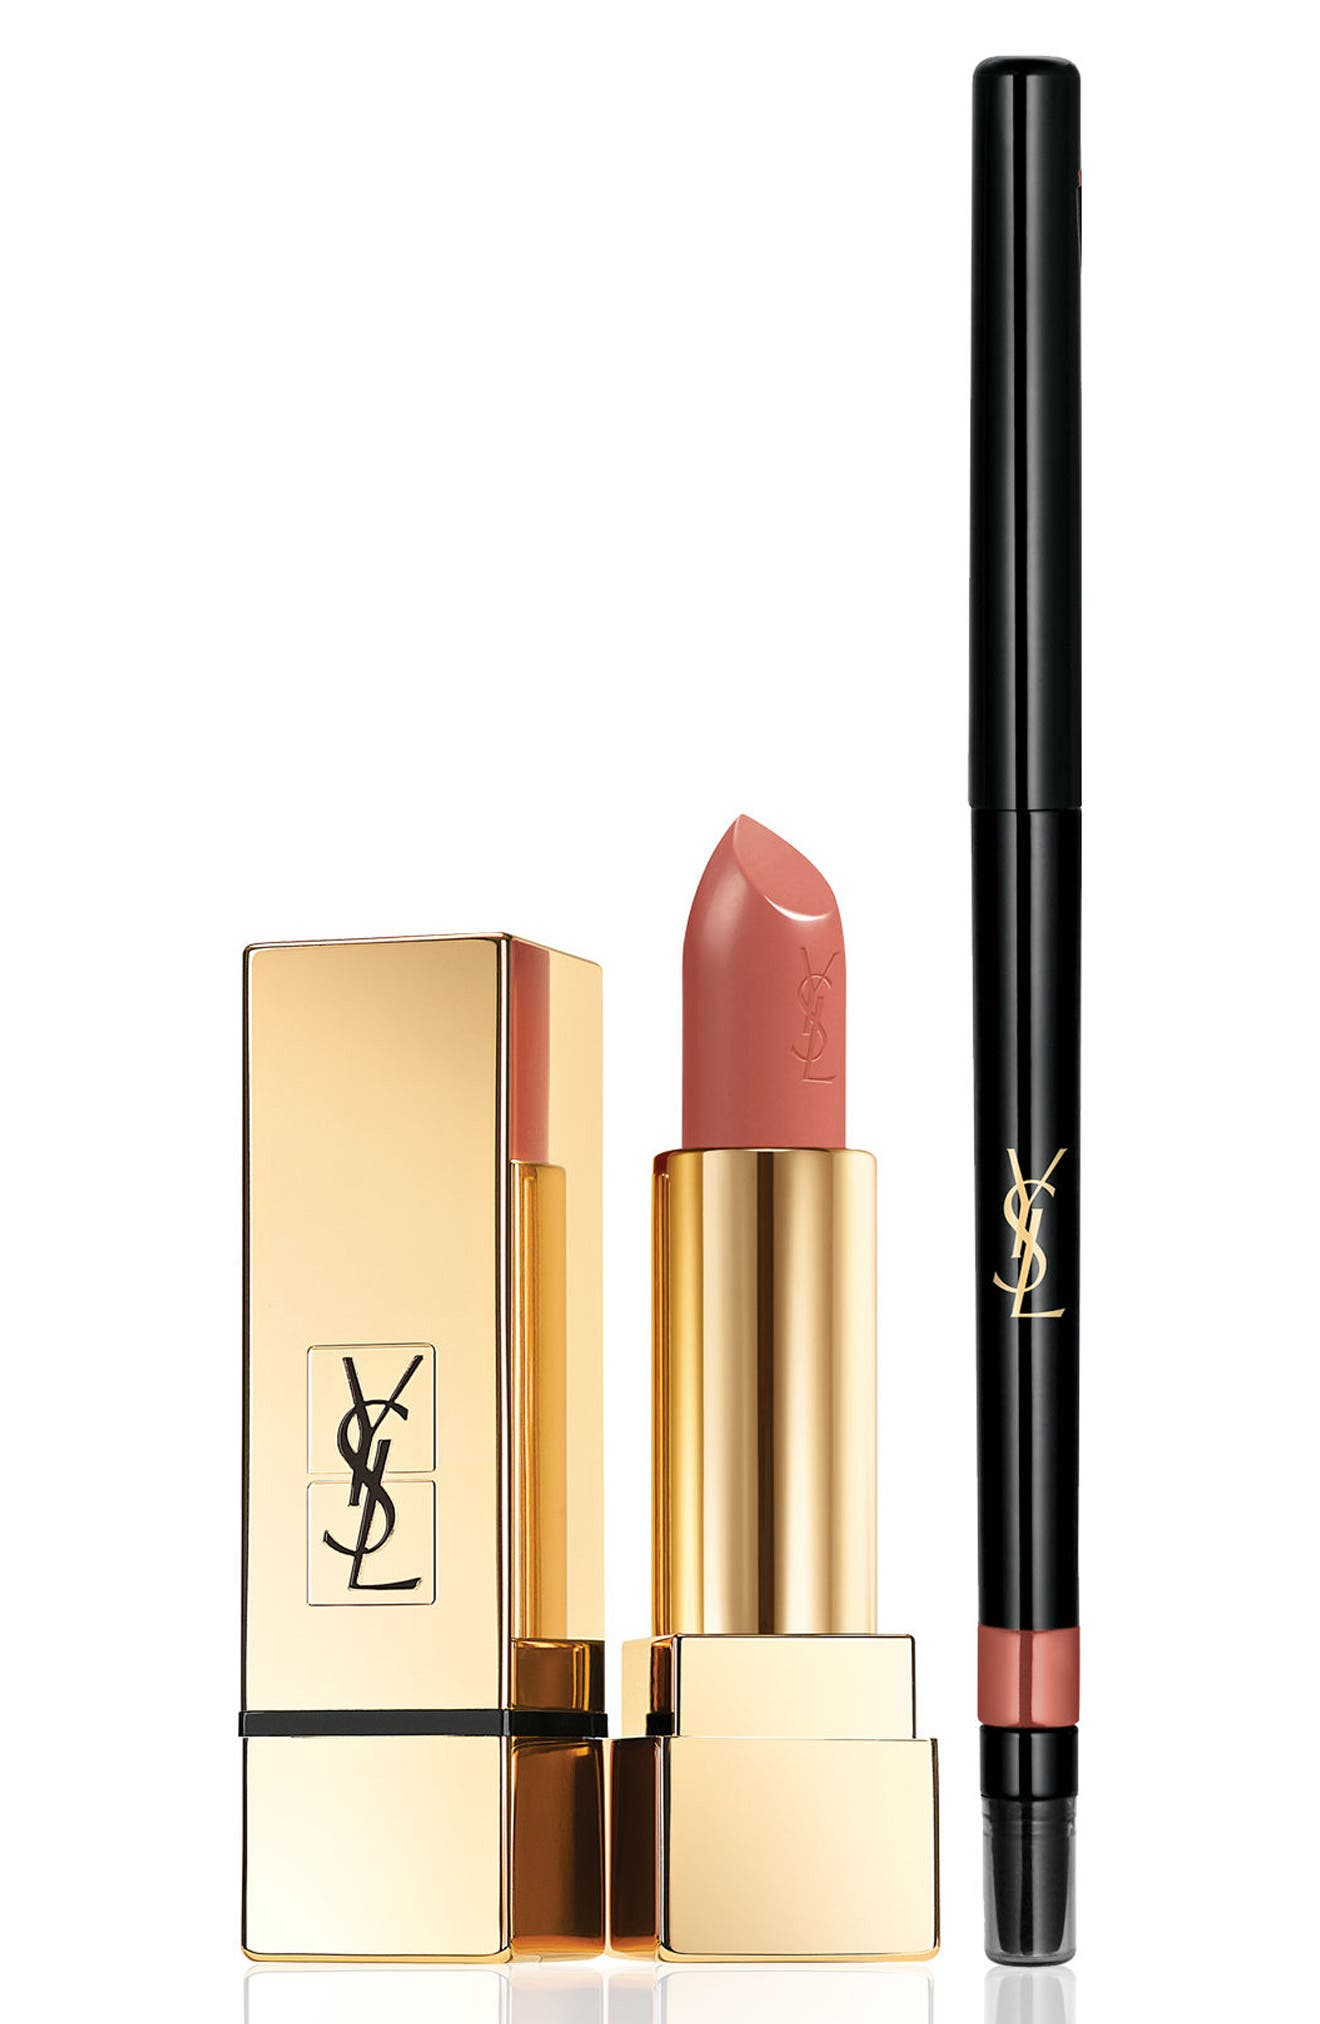 Yves Saint Laurent Nude Lip Kit ($67 Value)